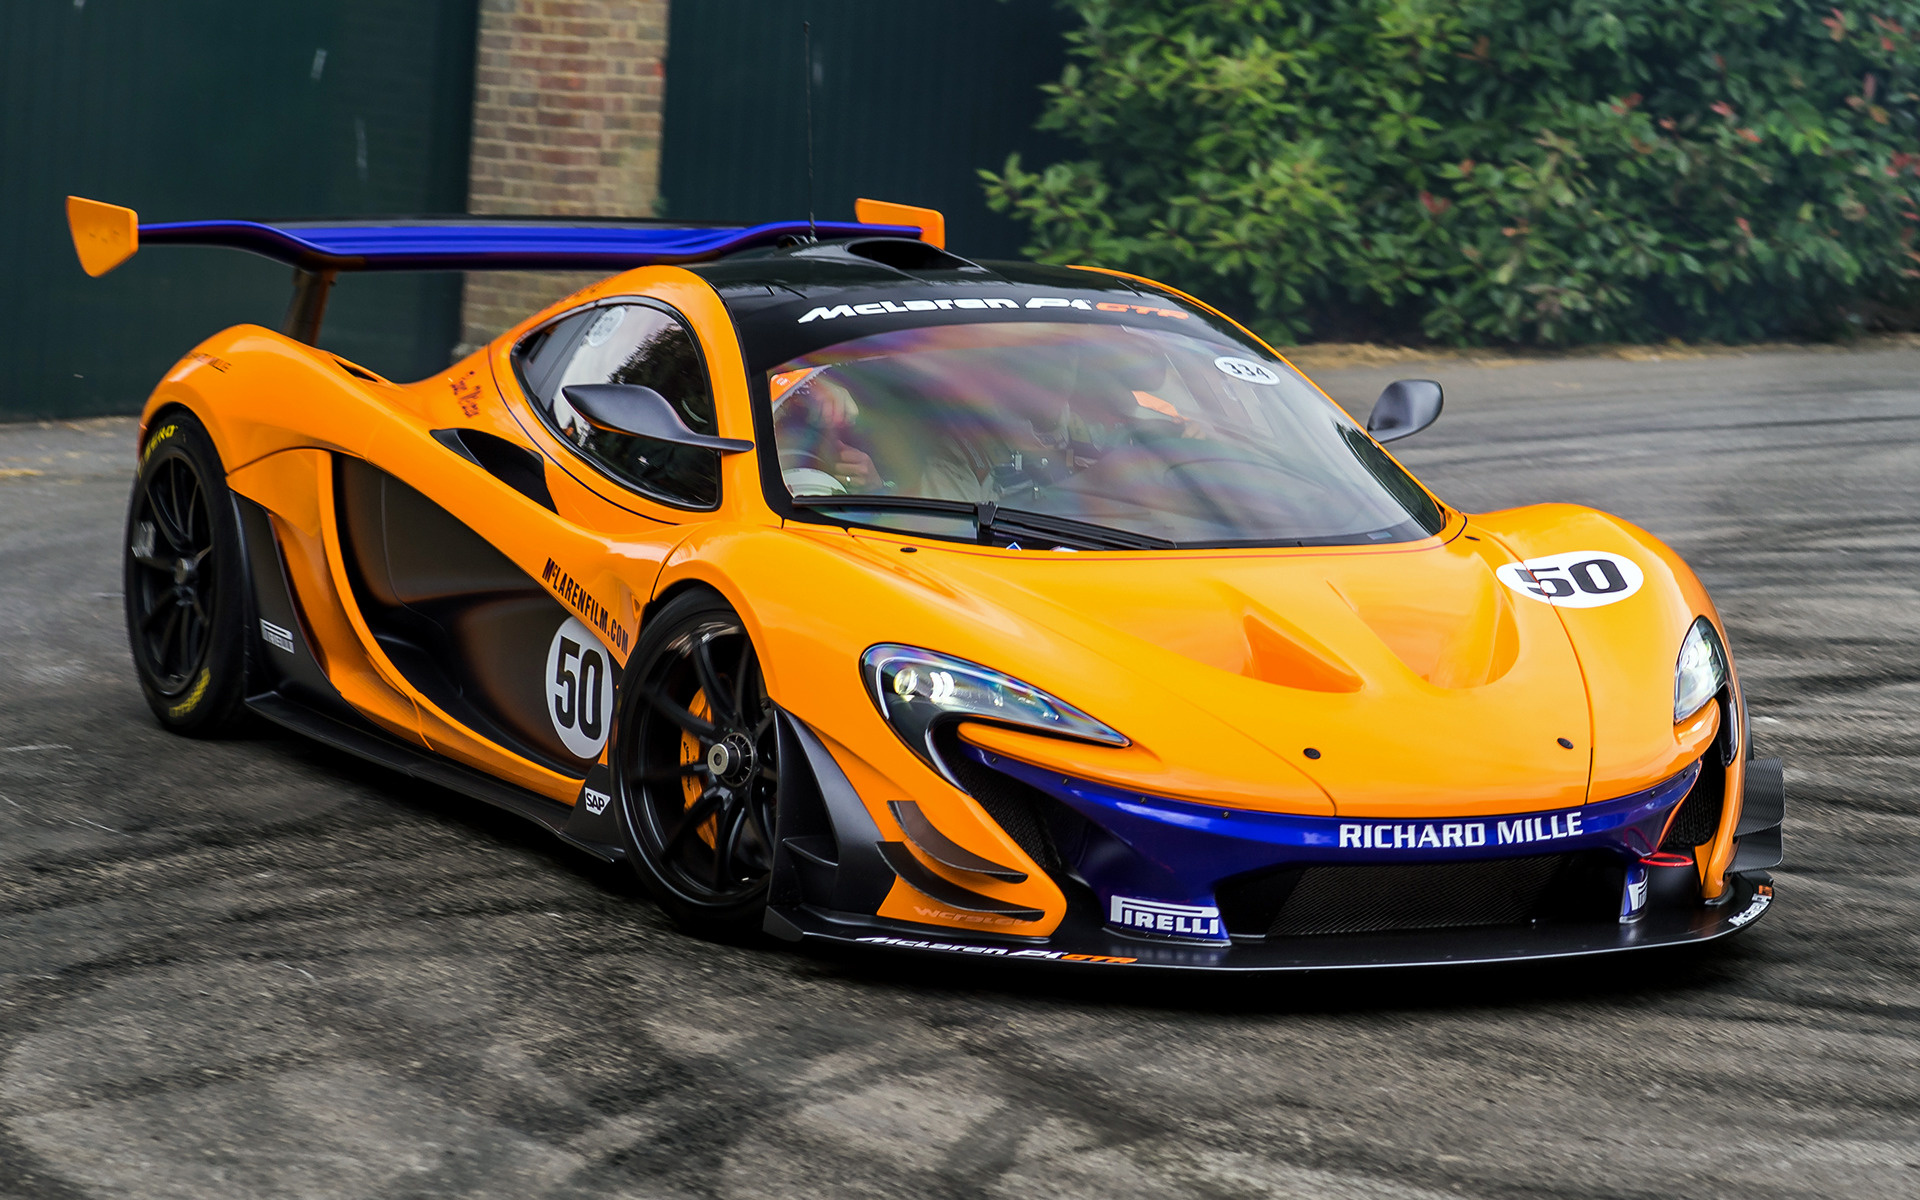 P And W BMW >> 2015 McLaren P1 GTR - Wallpapers and HD Images | Car Pixel